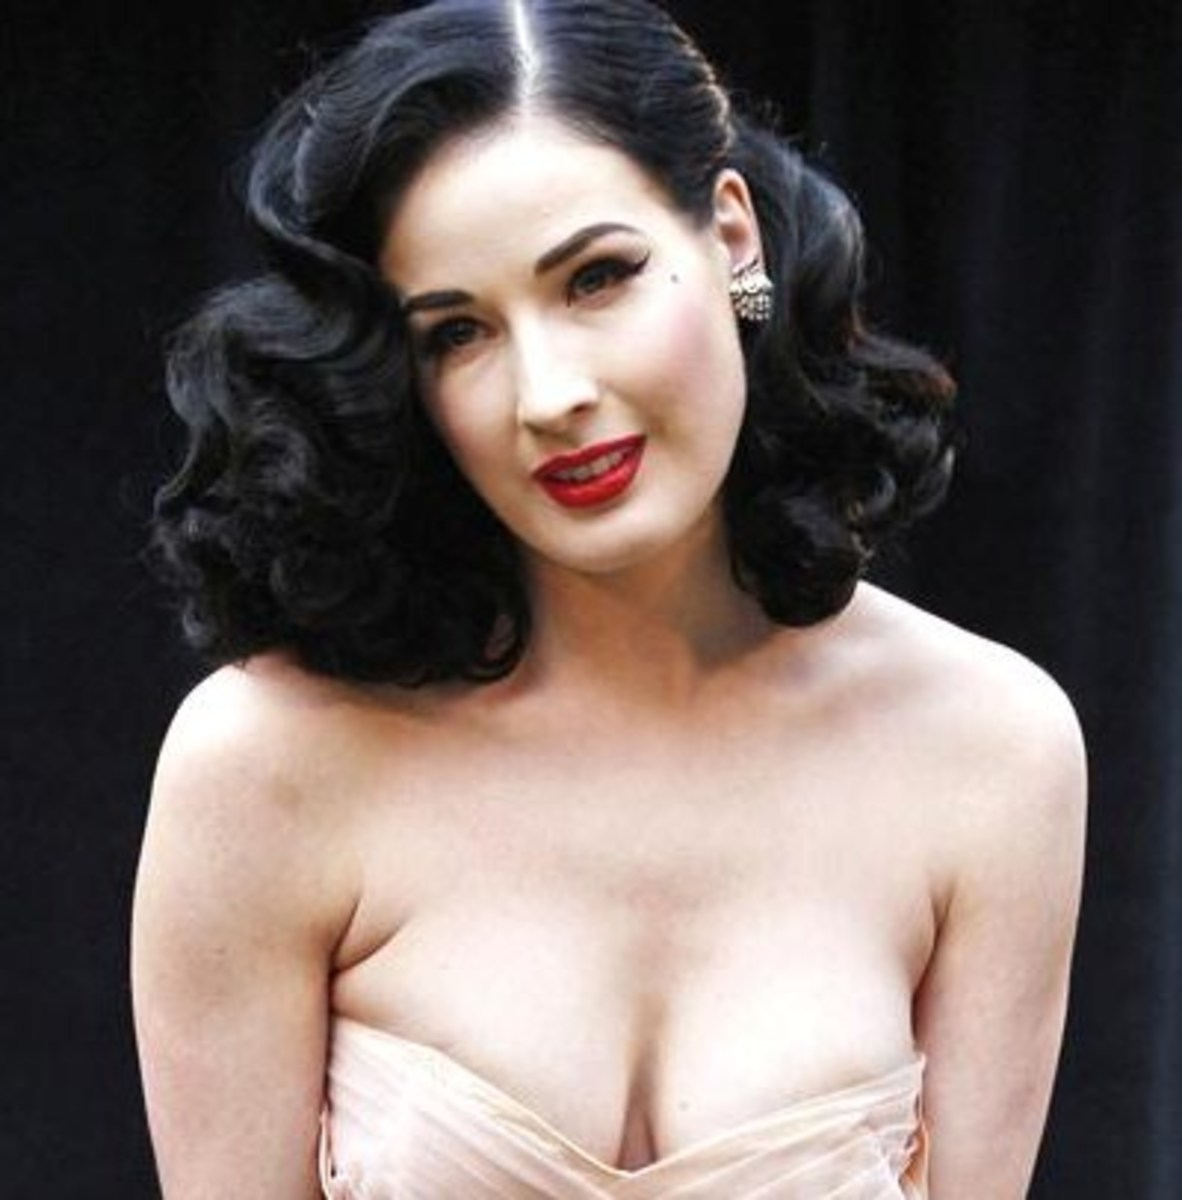 Dita Von Teese in a cherry red lipstick color.